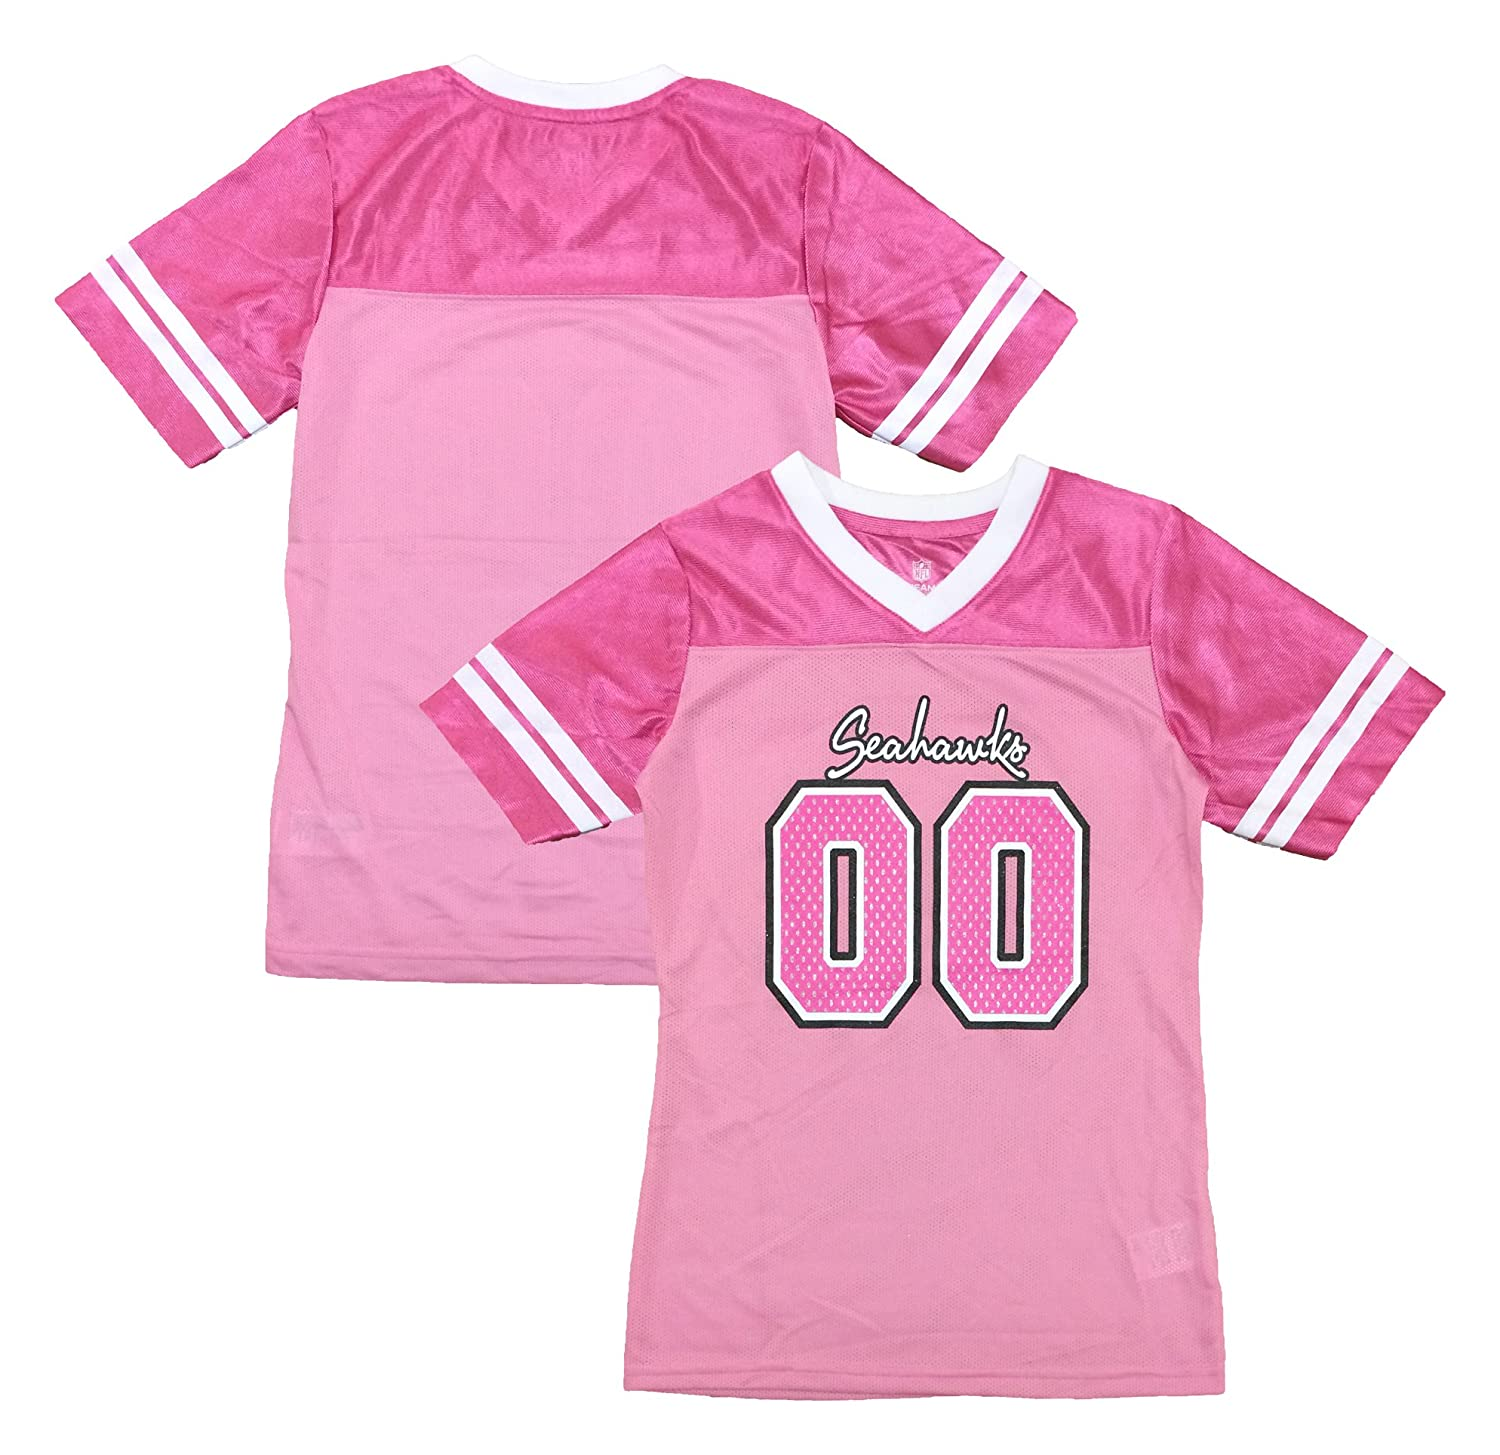 0017f214396 Amazon.com: Outerstuff Seattle Seahawks Logo #00 Pink Dazzle Girls Youth  Jersey: Clothing